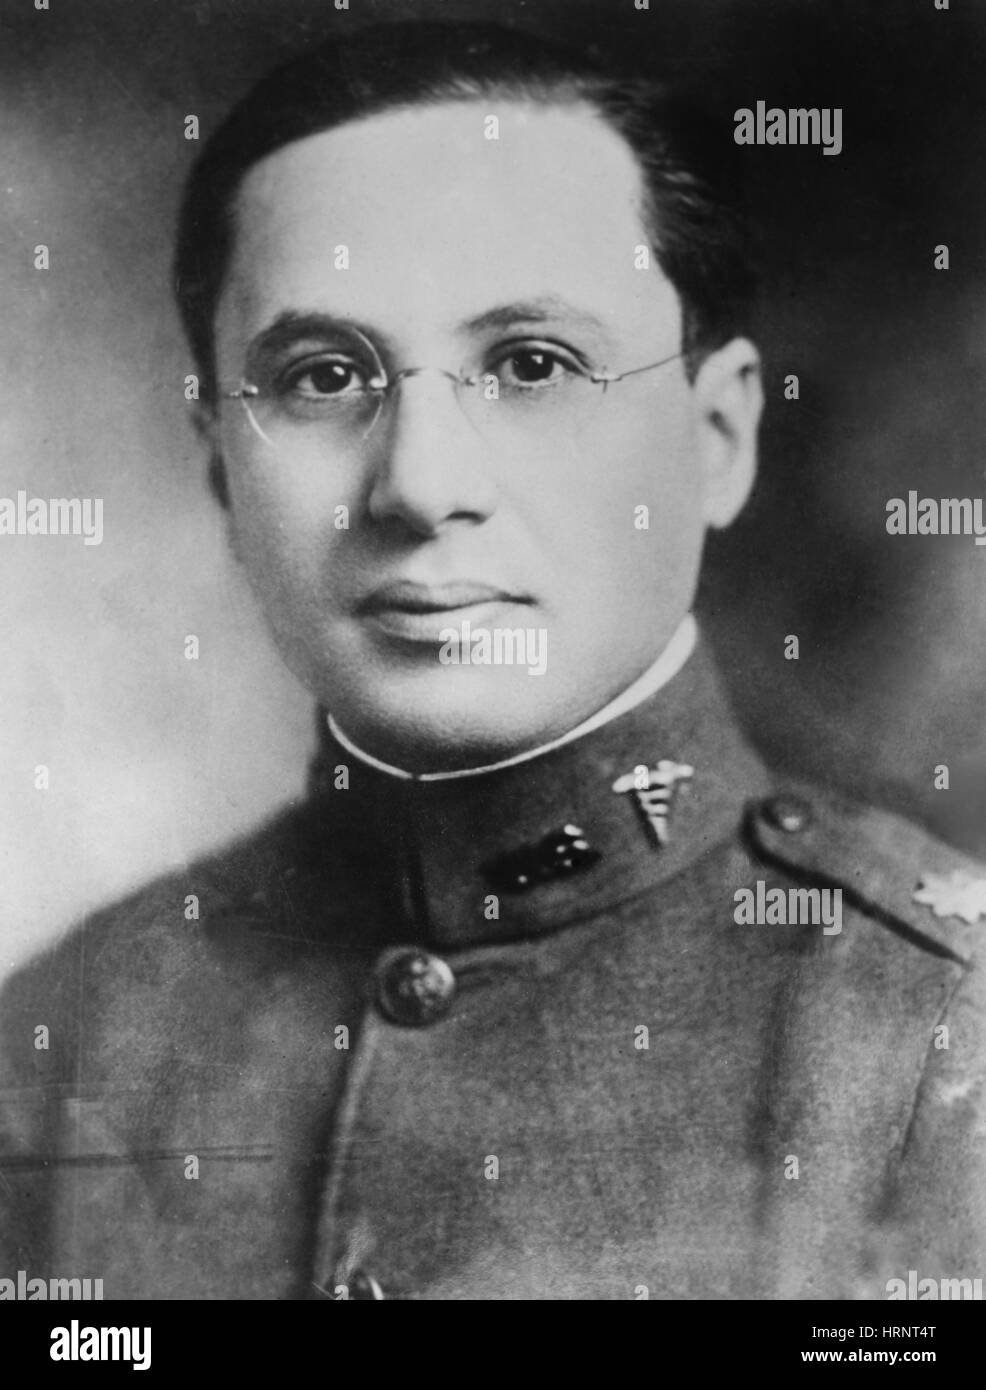 Colonel Harry Plotz, American Bacteriologist - Stock Image